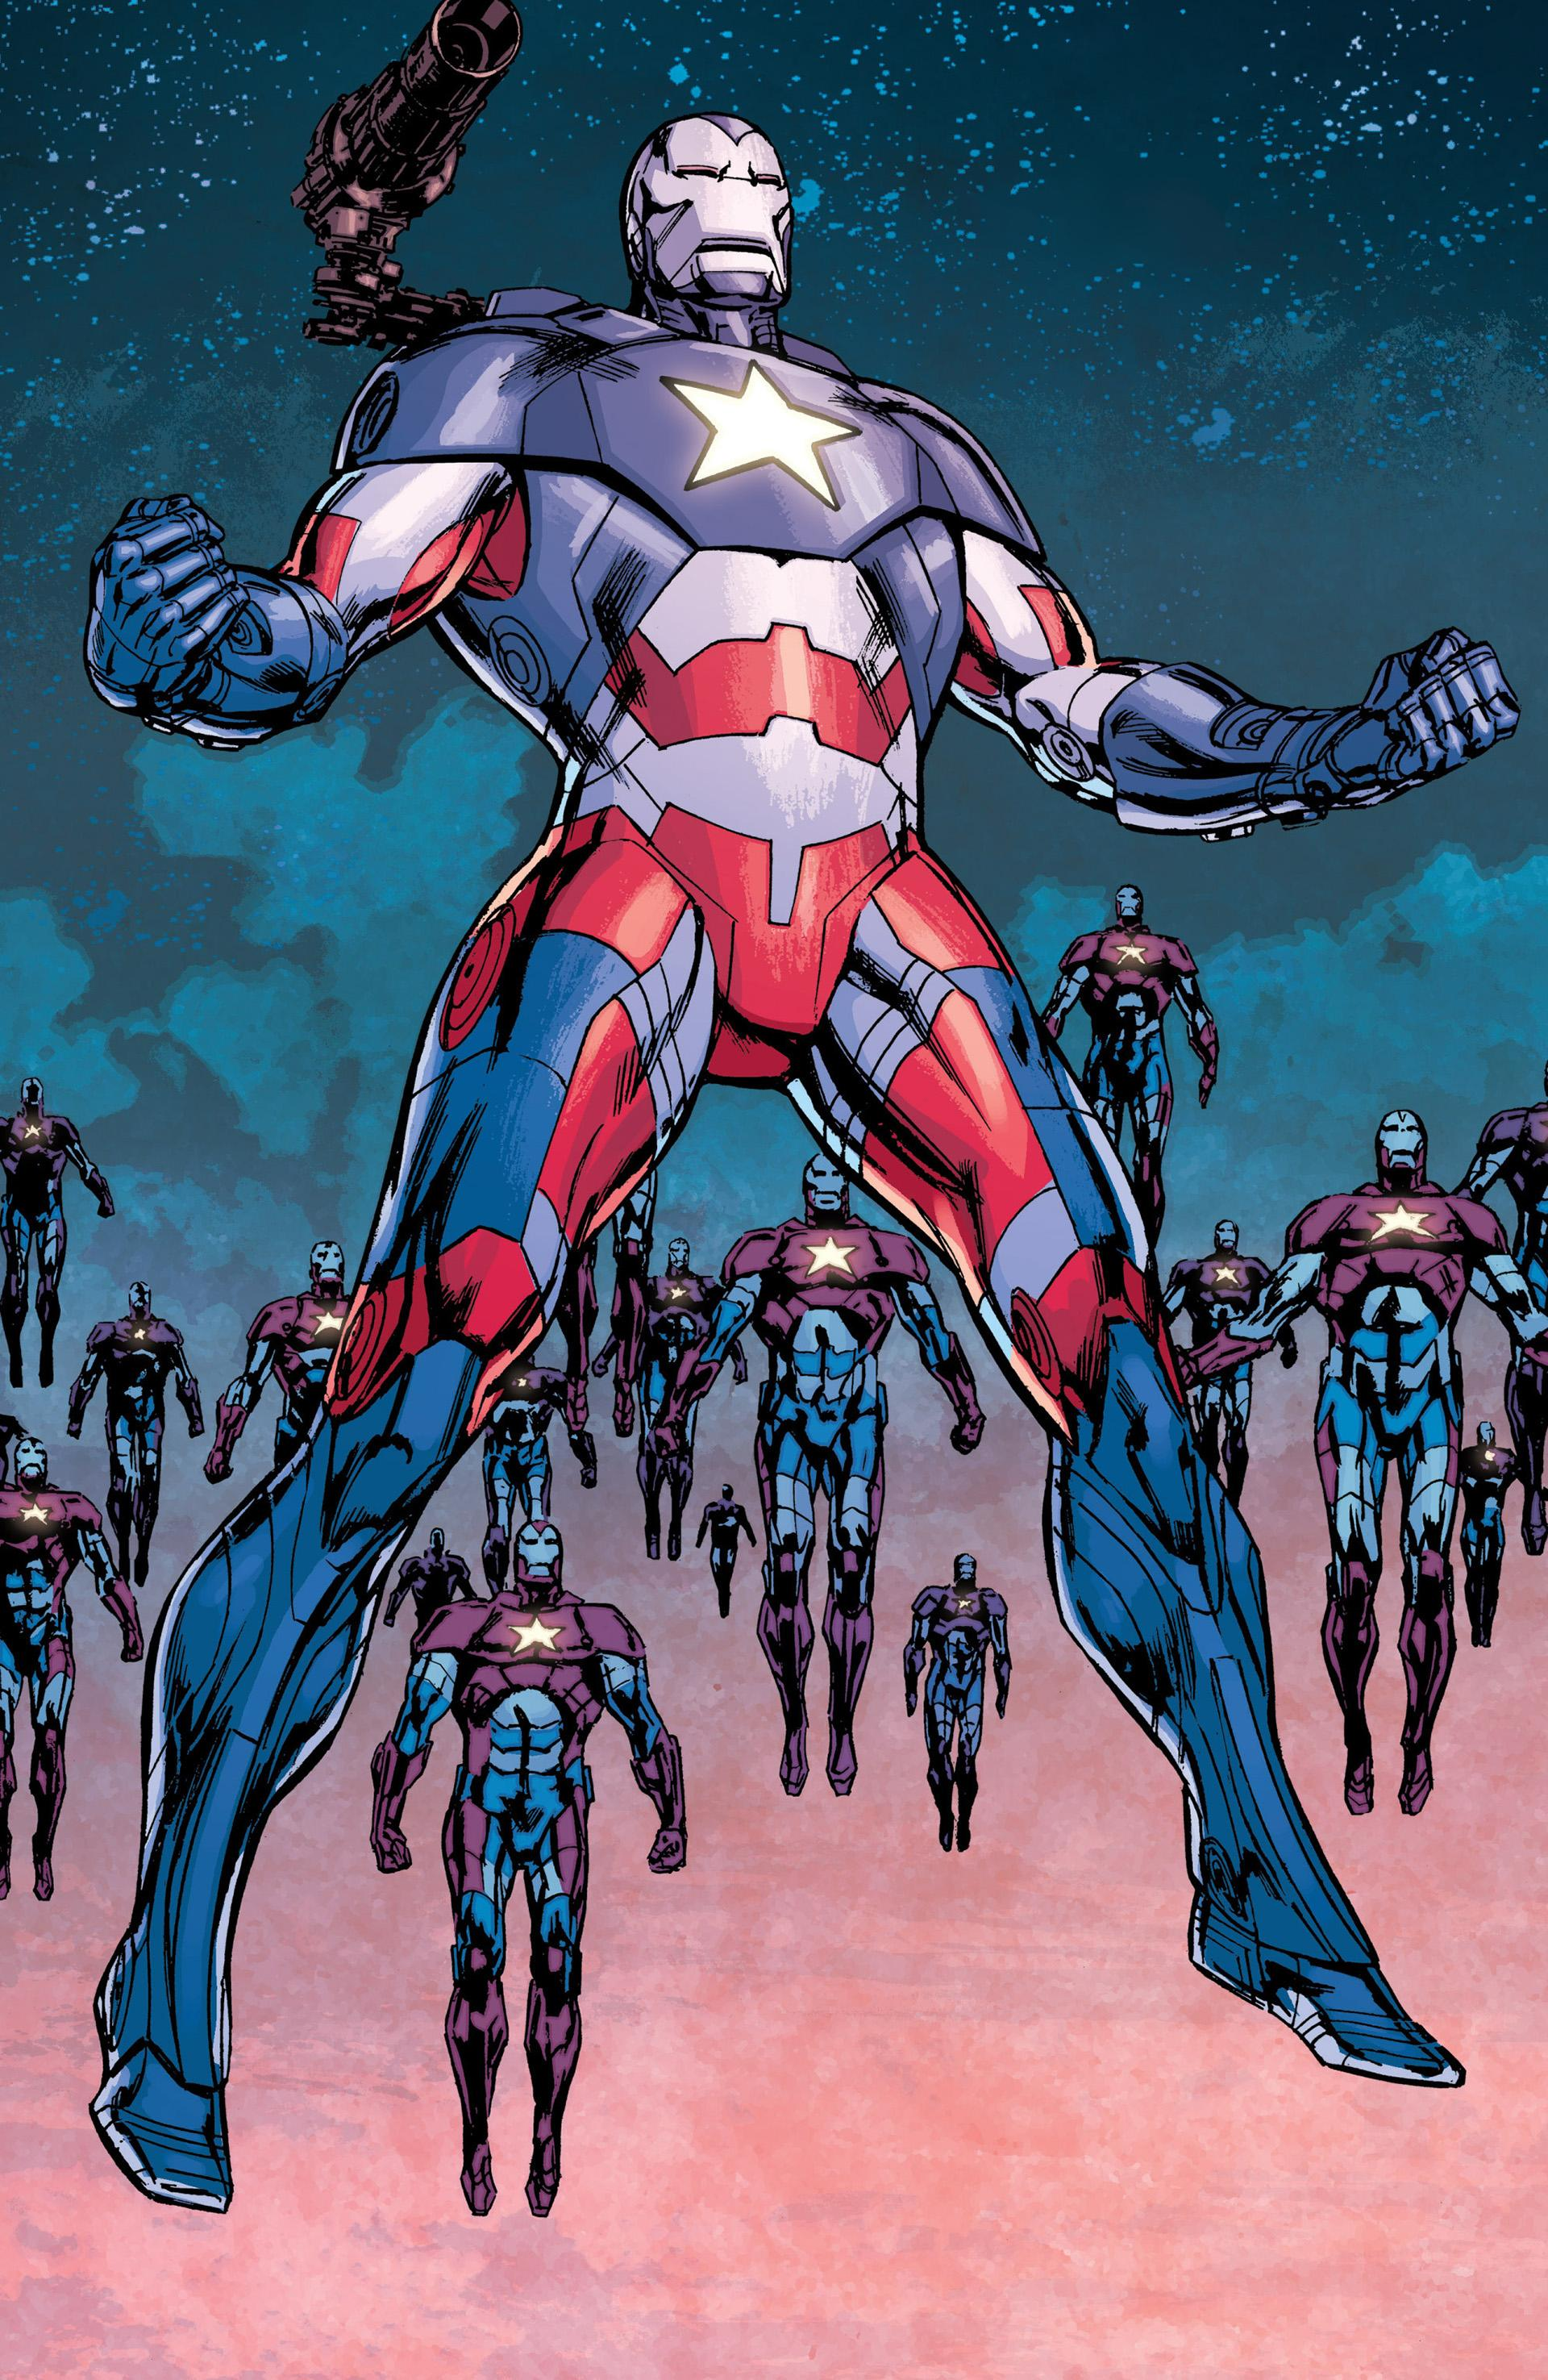 http://images2.wikia.nocookie.net/__cb20130710203332/marveldatabase/images/b/bf/James_Rhodes_%28Earth-616%29_from_Secret_Avengers_Vol_2_6_001.jpg